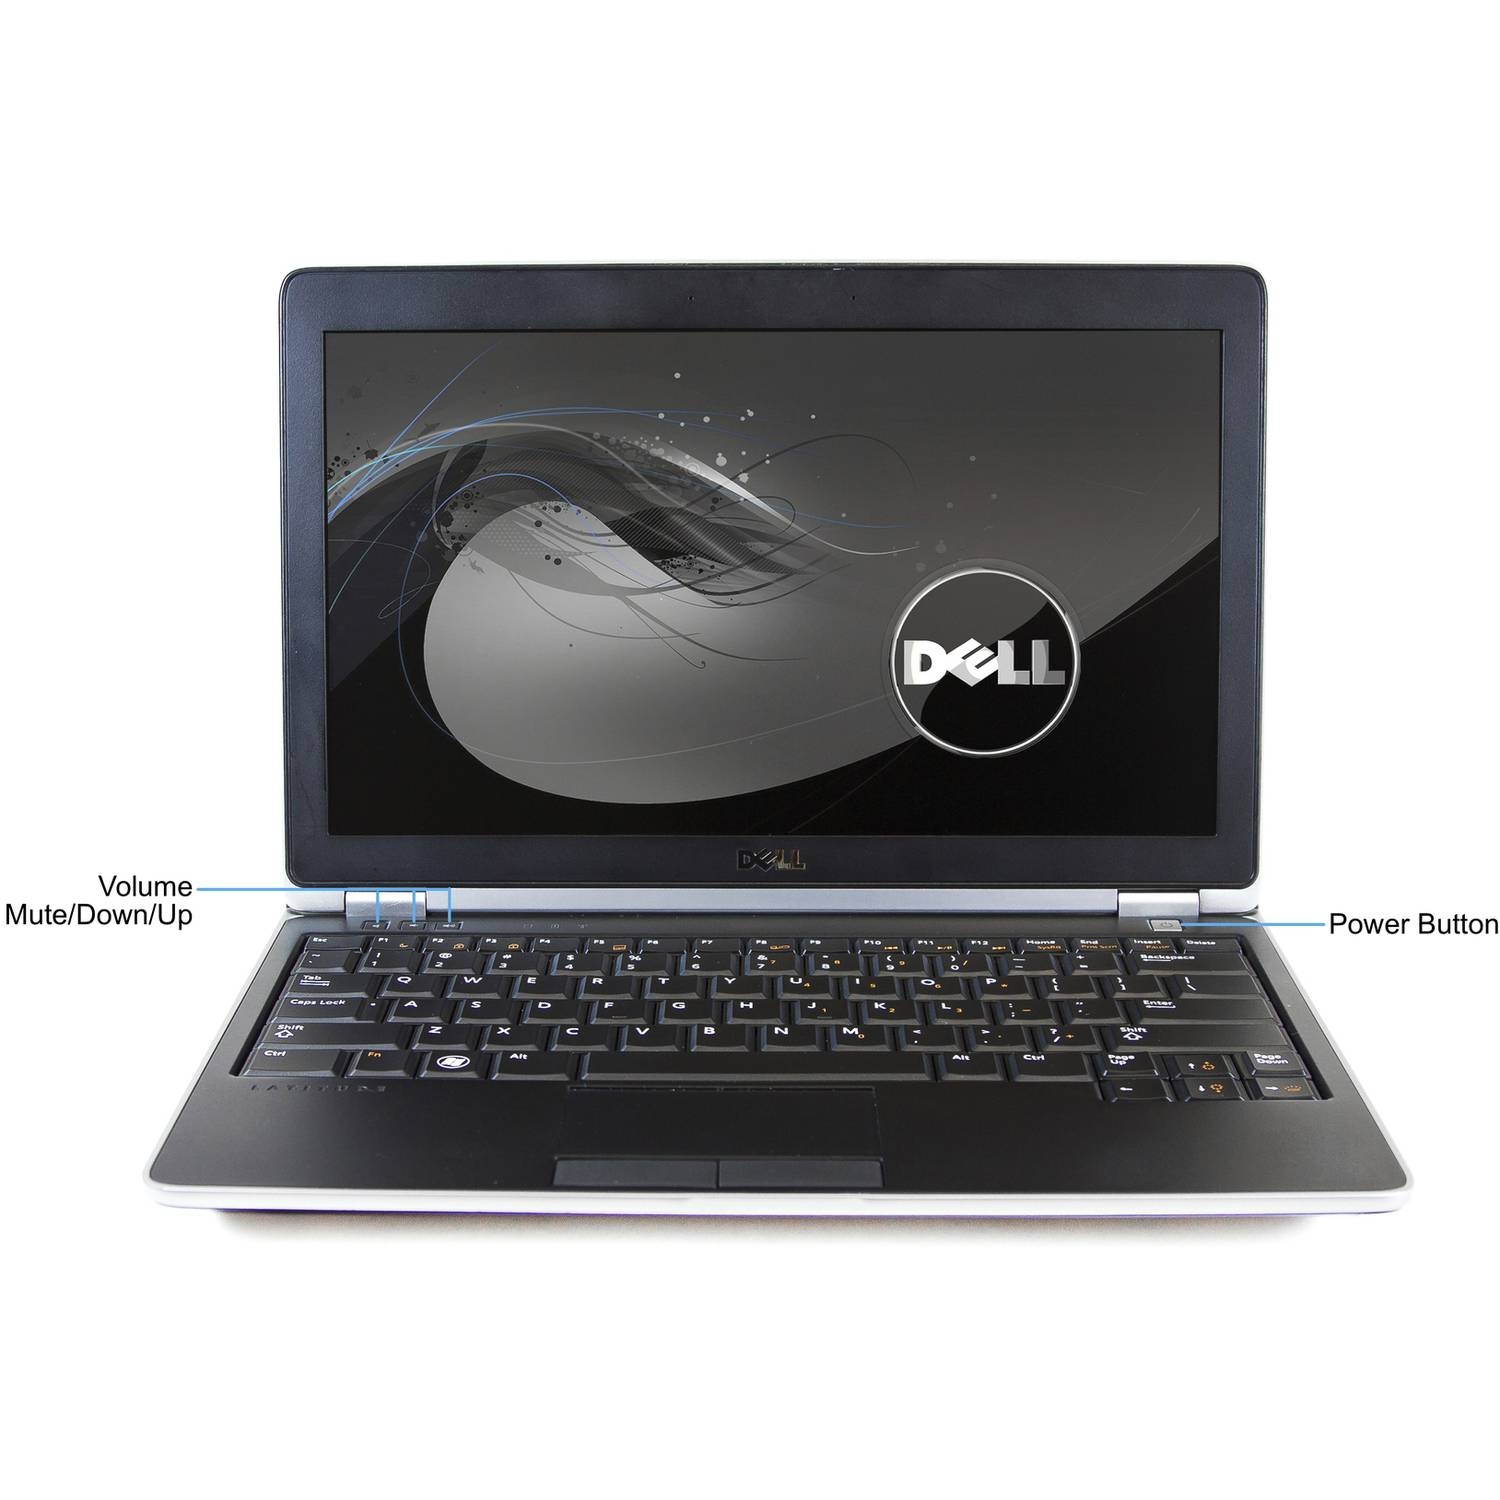 "Refurbished Dell Silver 12.5"" E6220 Laptop PC with Intel Core i5 Processor, 4GB Memory, 128GB Solid State Drive and Windows 7 Professional"